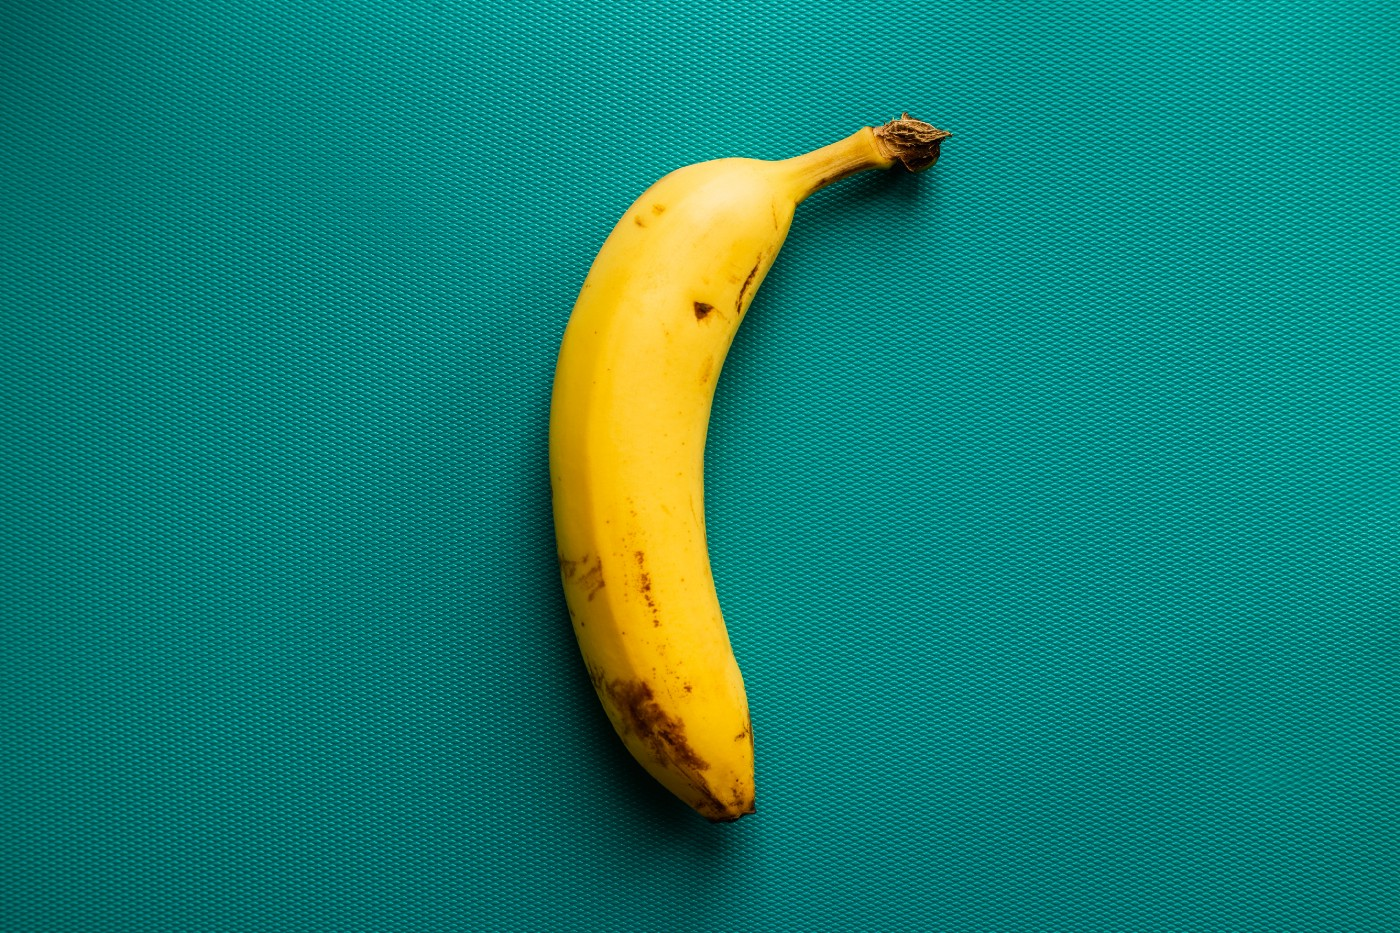 A photo of a banana against a teal background.